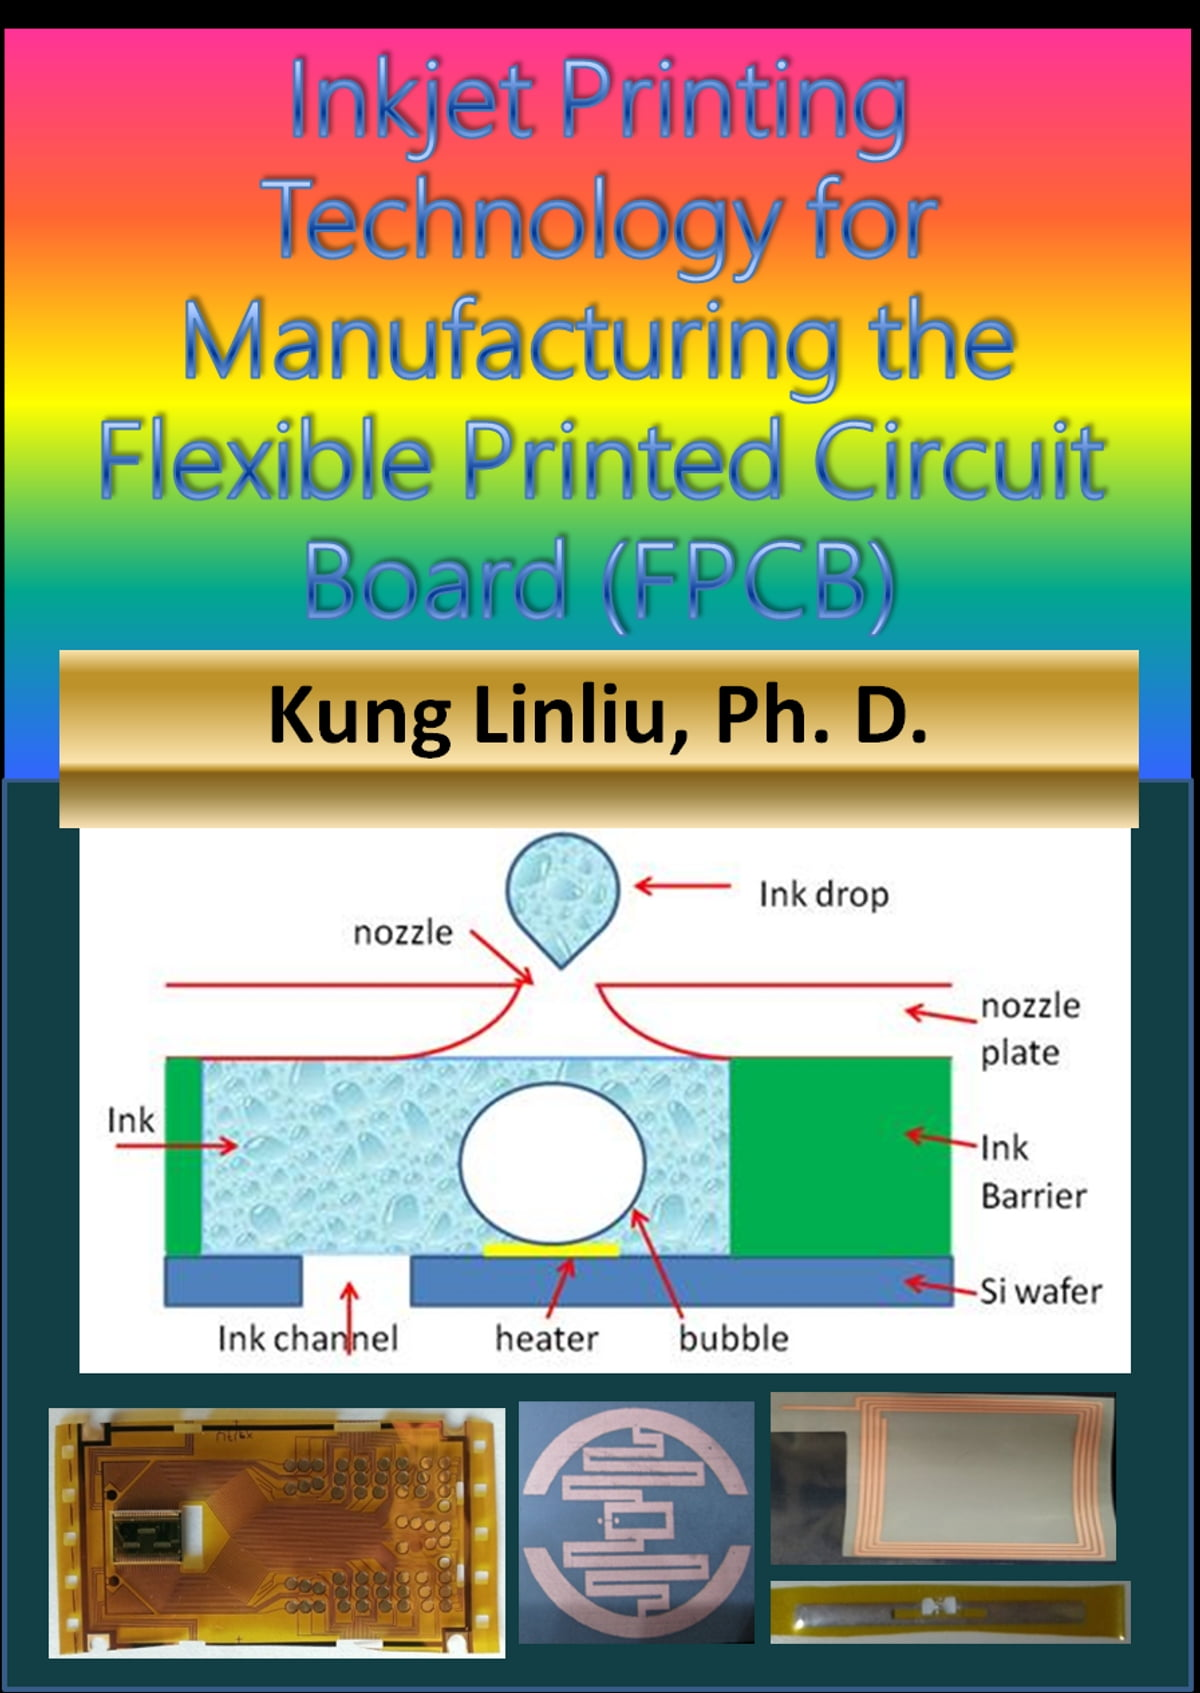 Inkjet Printing Technology For Manufacturing The Flexible Printed Circuit Board Printer Fpcb Ebook By Kung Linliu 1230002357836 Rakuten Kobo